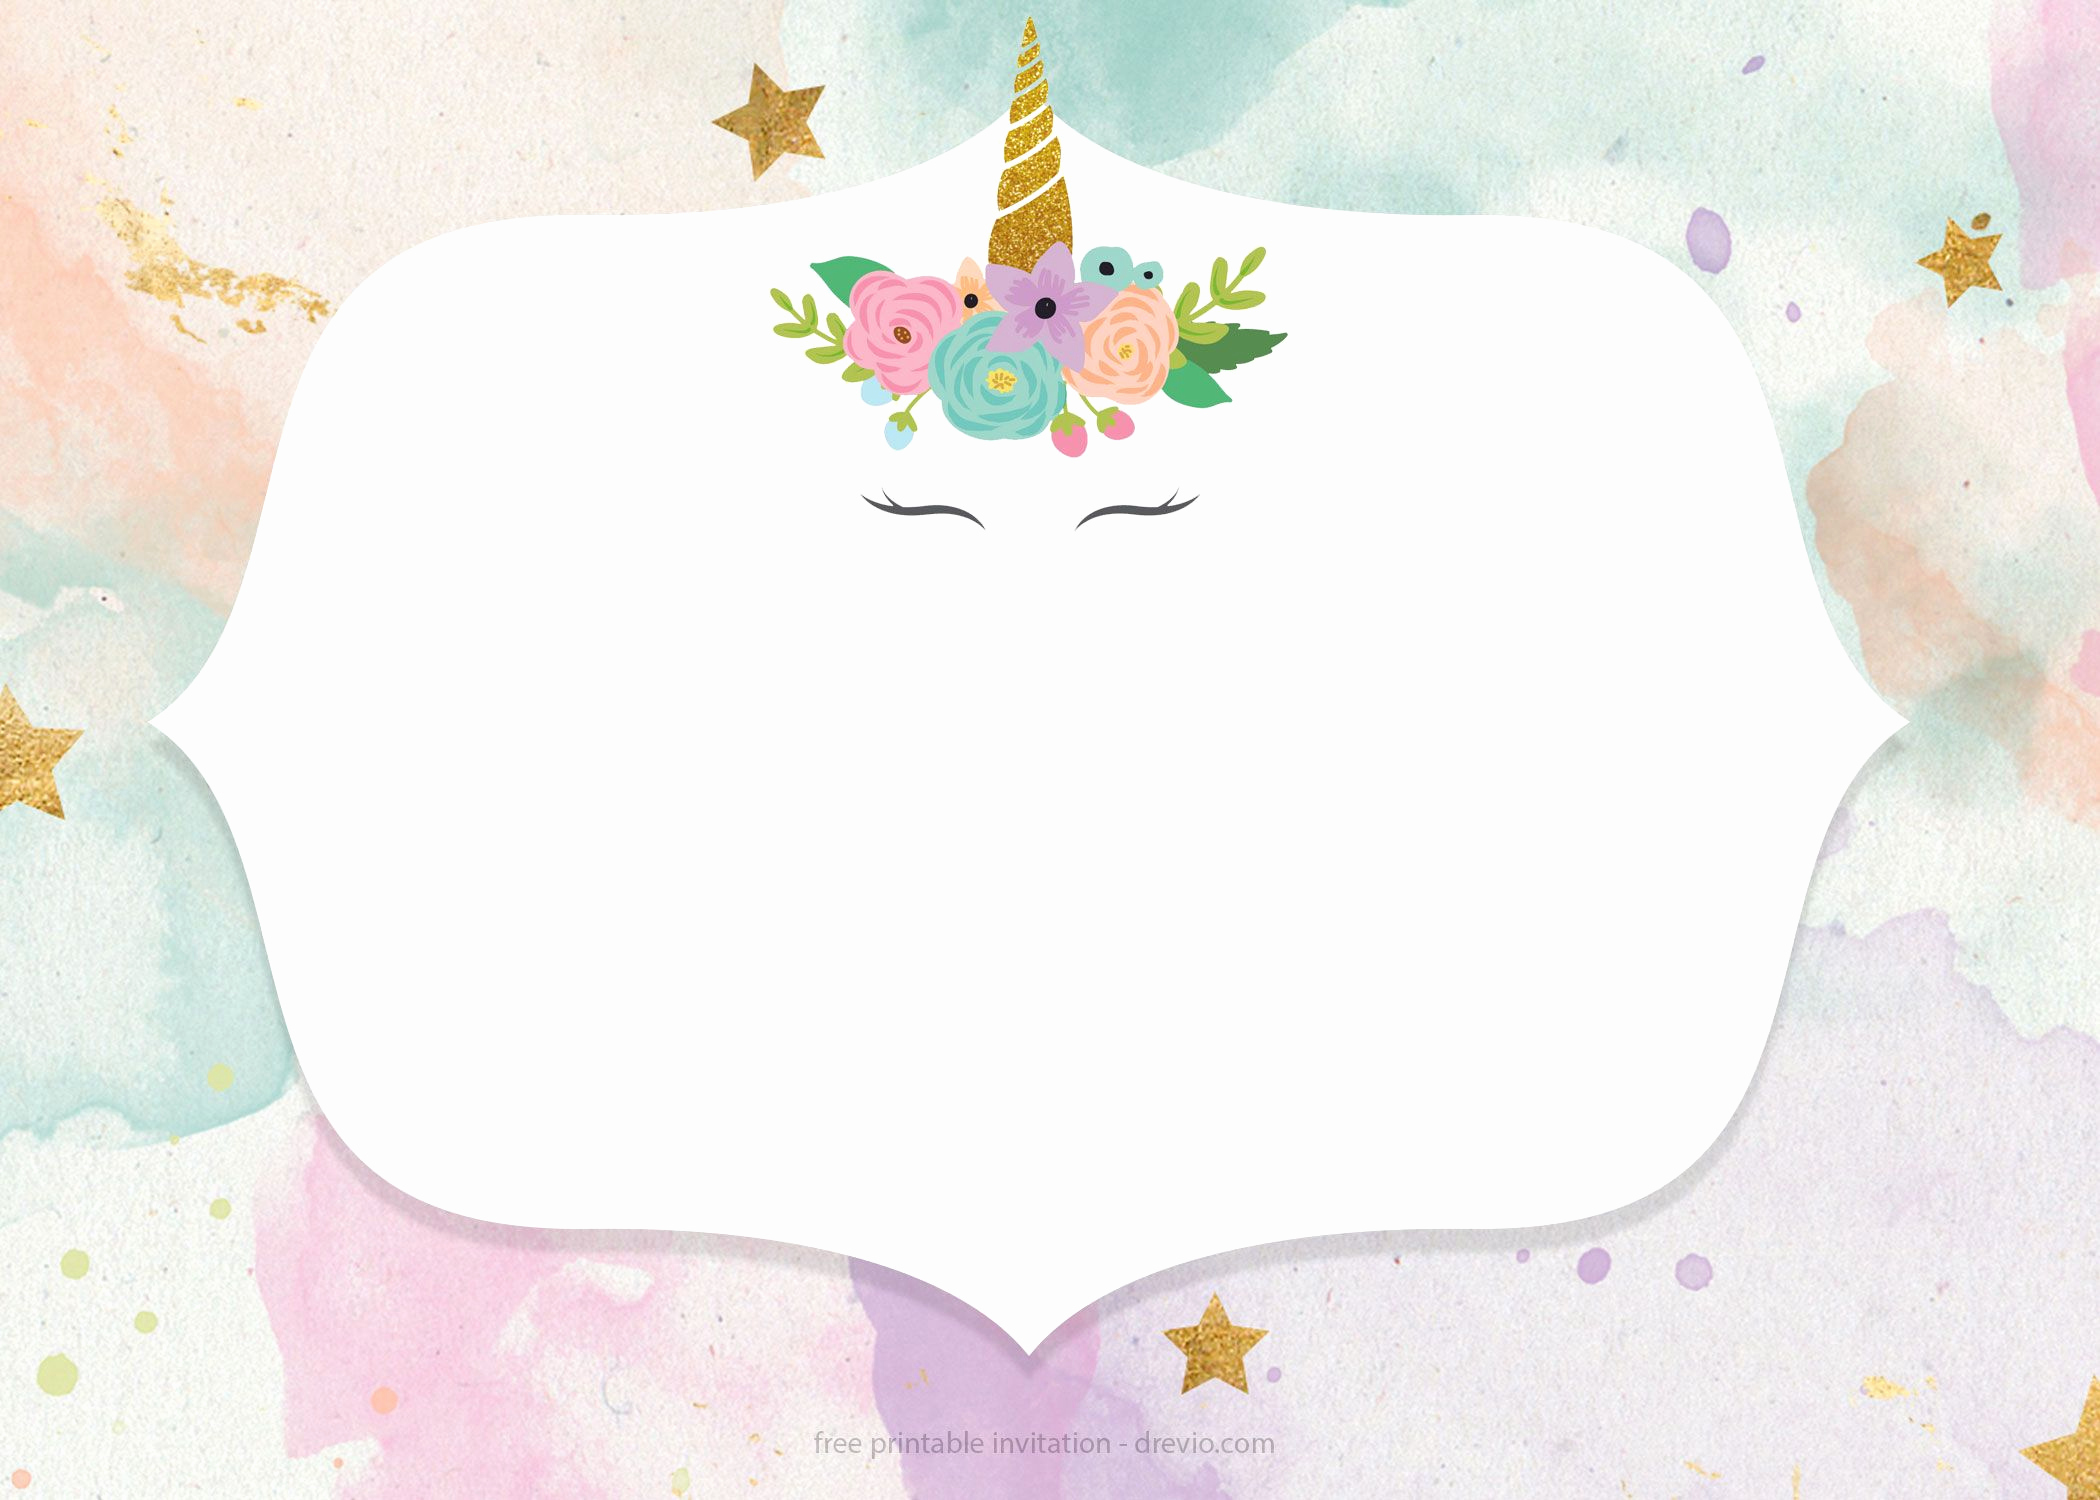 Unicorn Birthday Invitation Templates Awesome Free Whimsical Pastel Unicorn Birthday Invitation